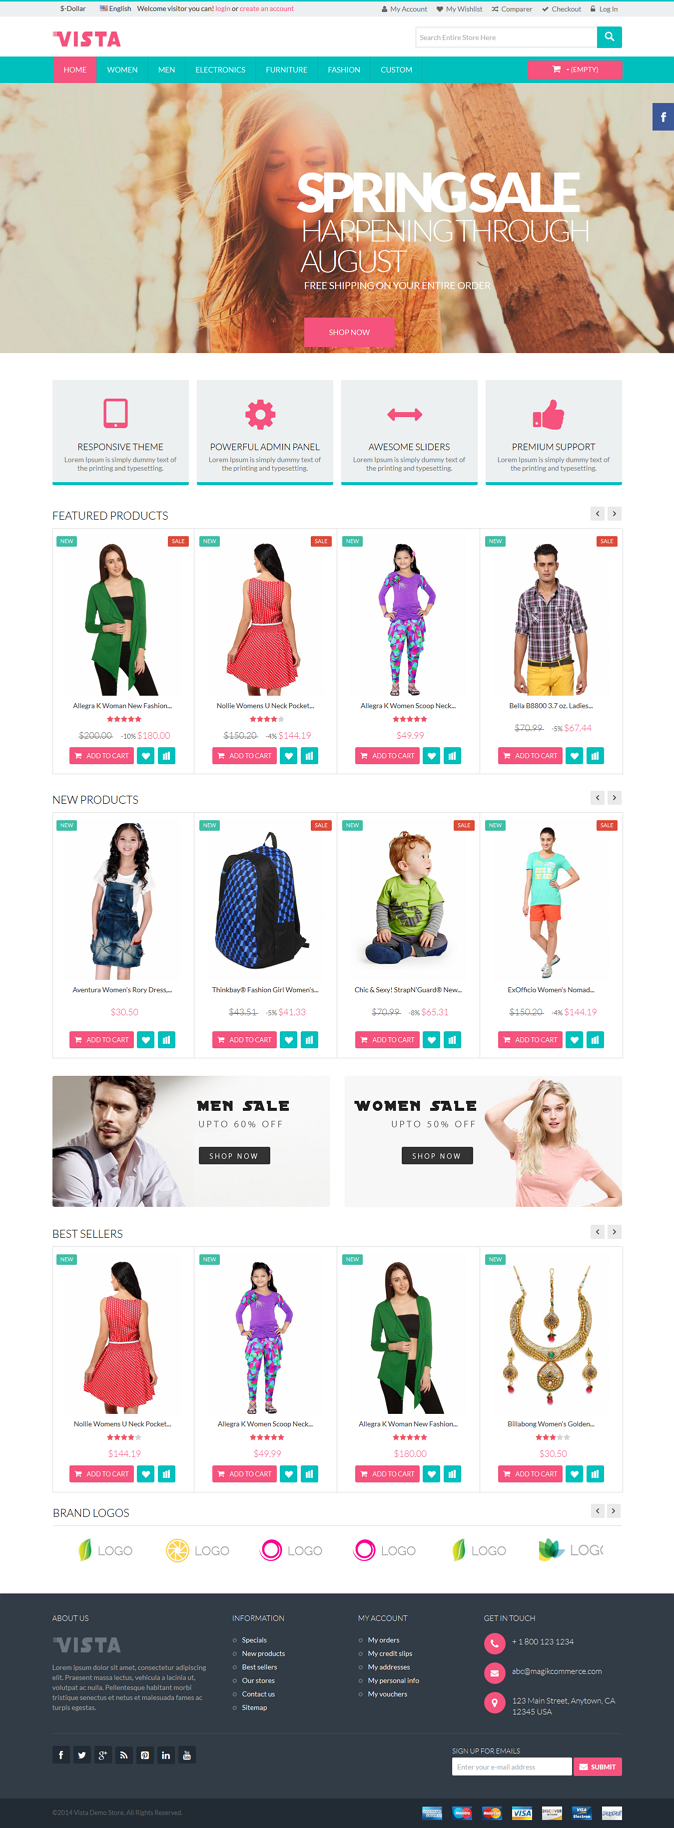 Vista is a brand new premium responsive PrestaShop theme which is fully customizable and suitabl ...